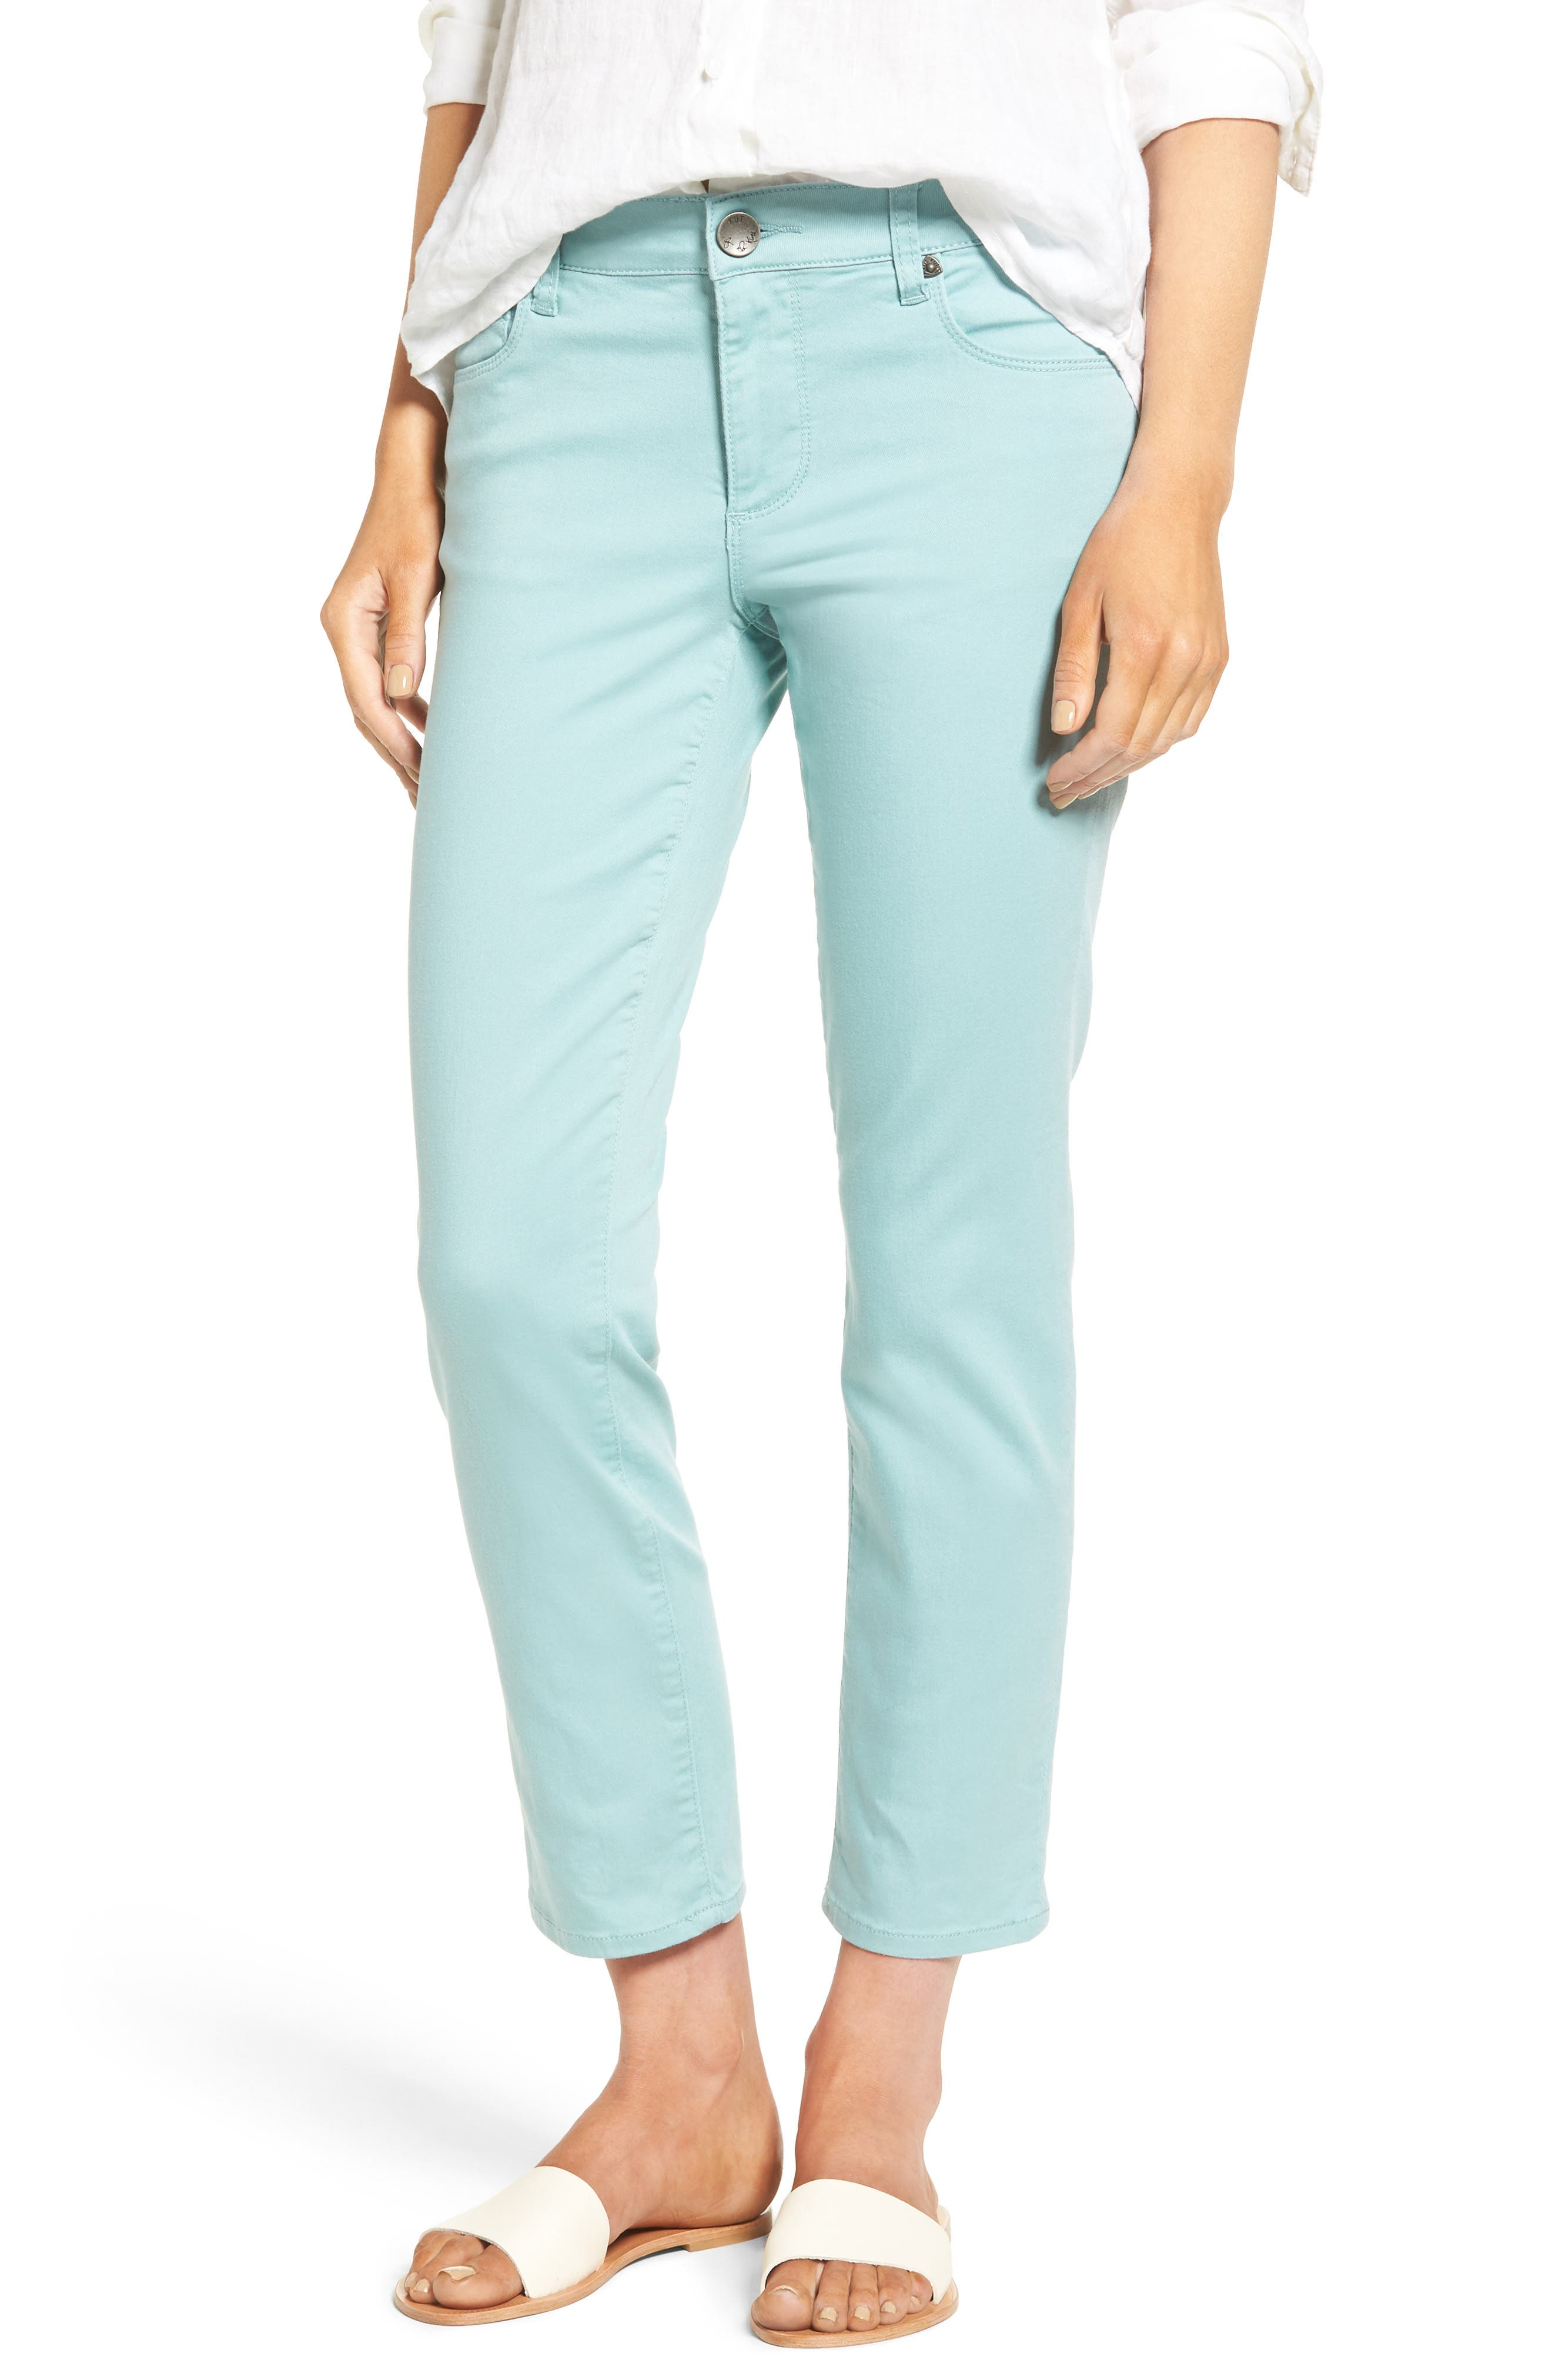 Alternate Image 1 Selected - KUT from the Kloth Reese Colored Ankle Jeans